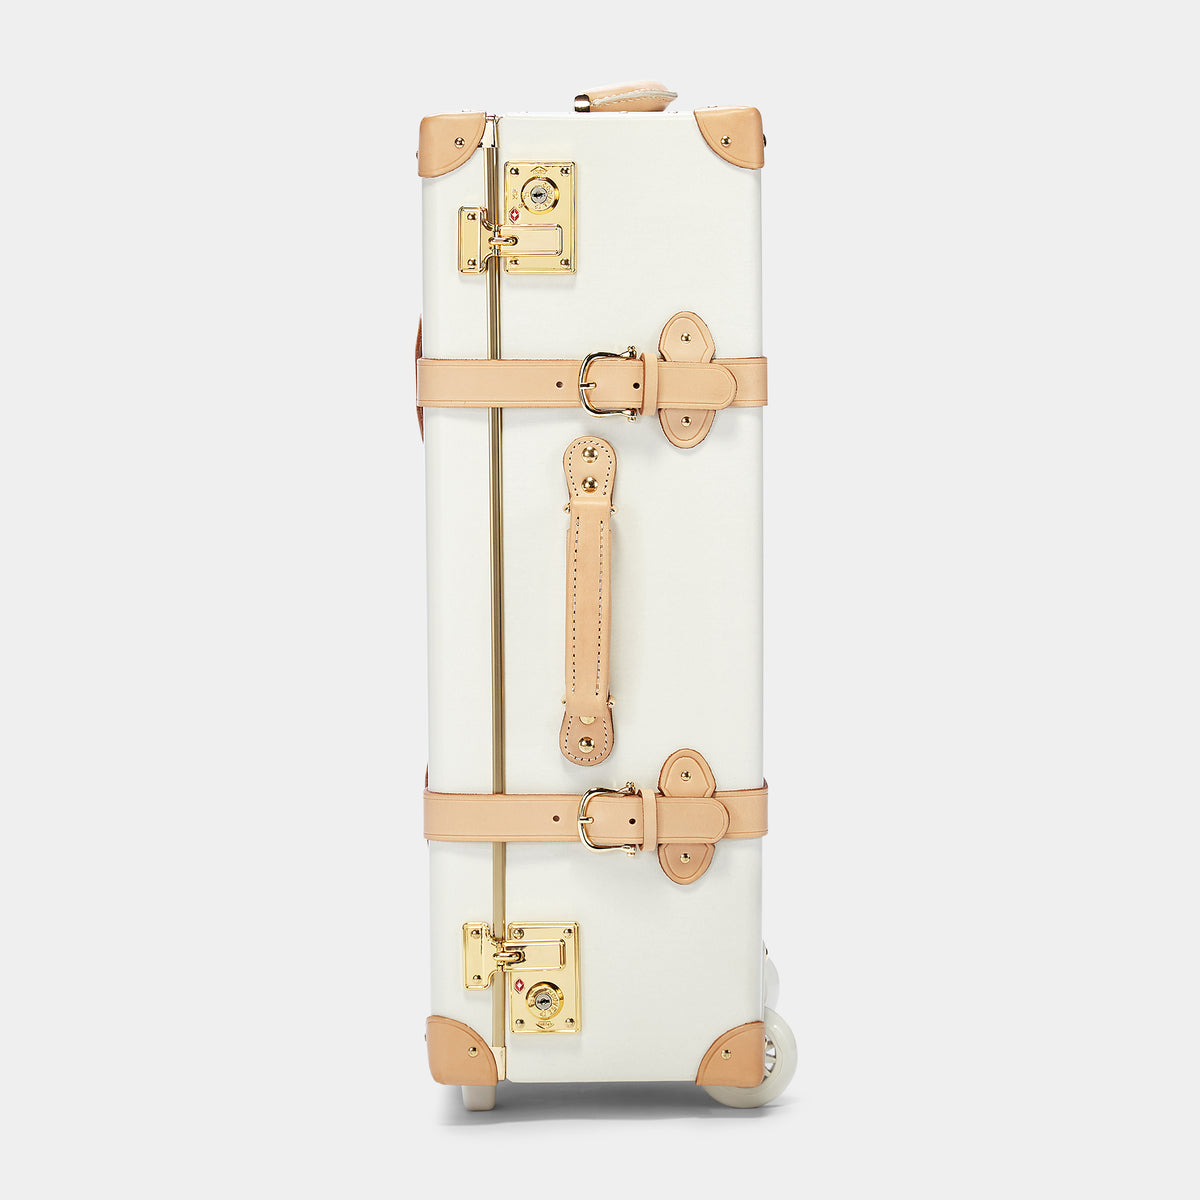 The Sweetheart Stowaway - Vintage-Inspired Luggage - Exterior Side